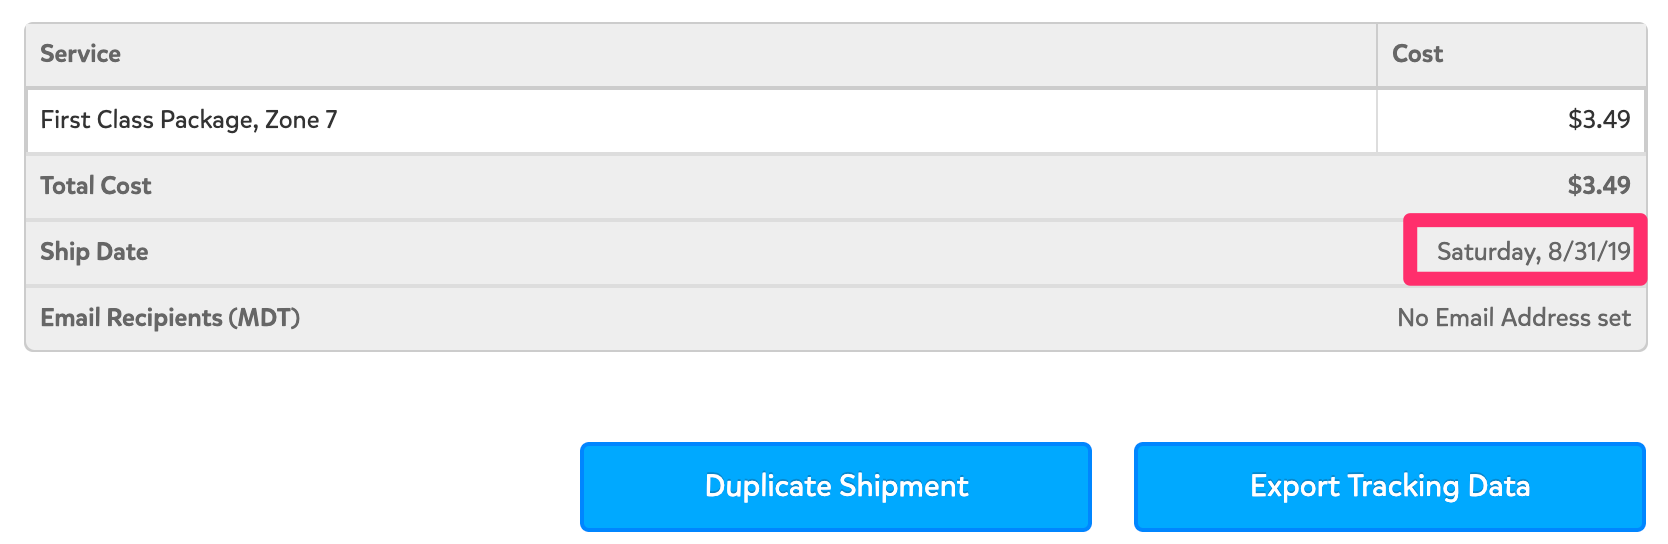 A screenshot showing where you can find the Ship Date at the bottom of the Shipment Details page. This information is listed below where the Total Cost is shown.